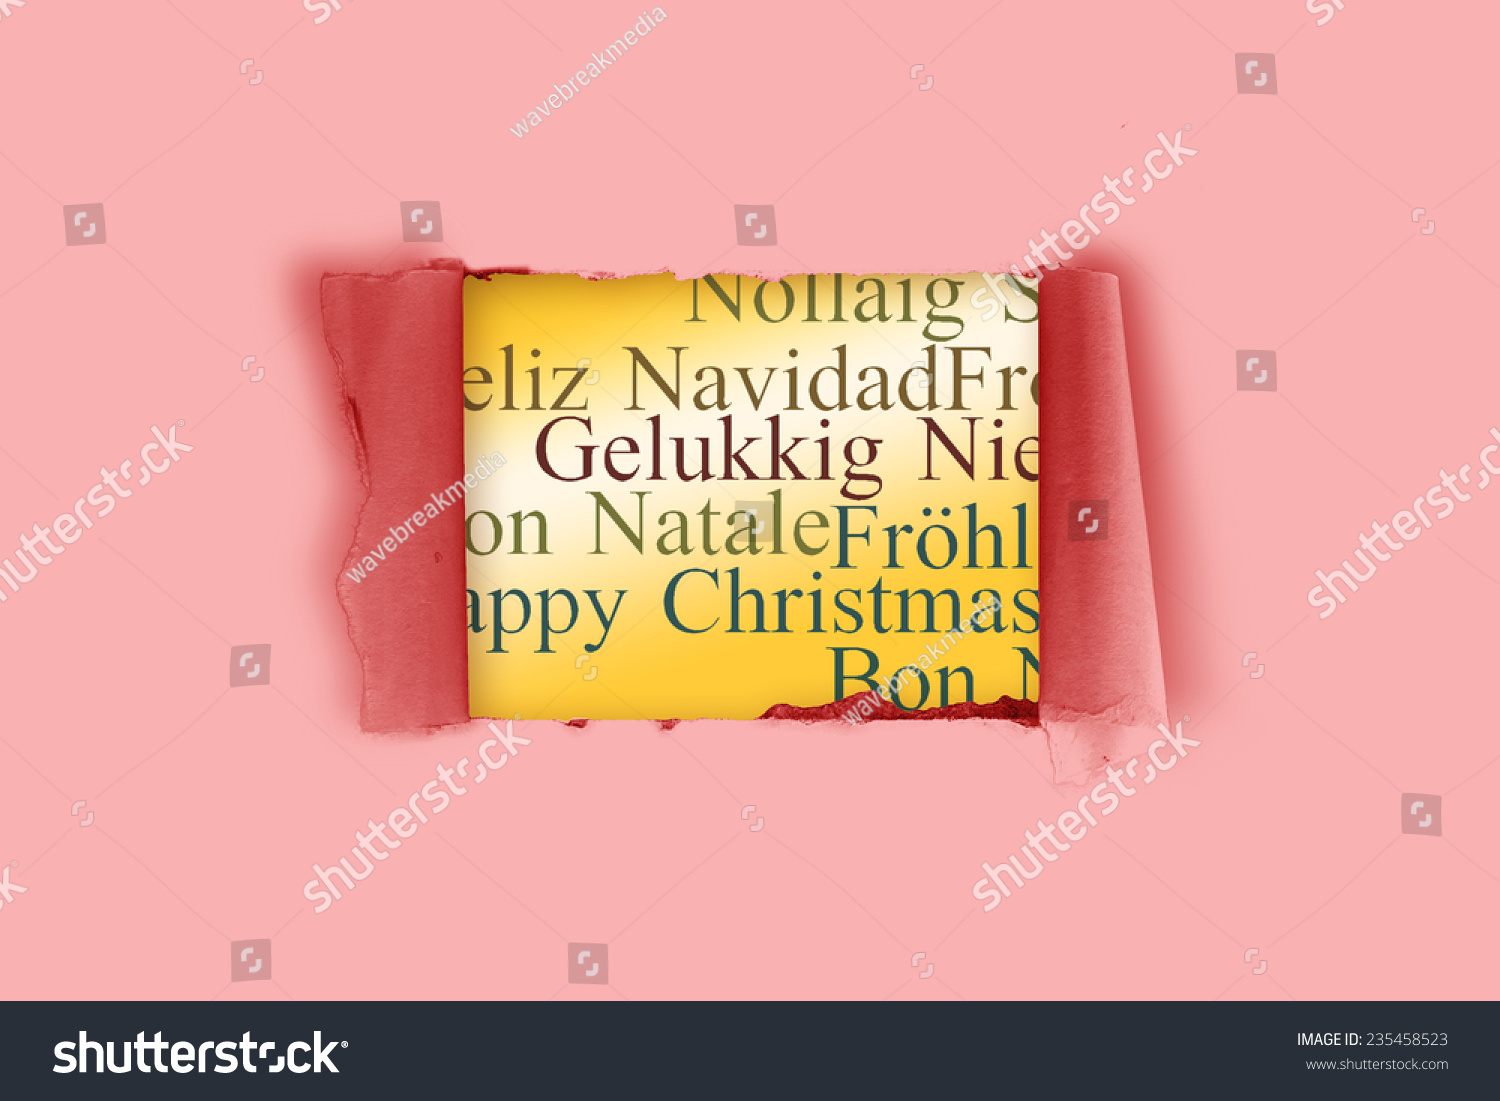 Rip paper against holiday greetings different stock illustration rip paper against holiday greetings different stock illustration 235458523 shutterstock m4hsunfo